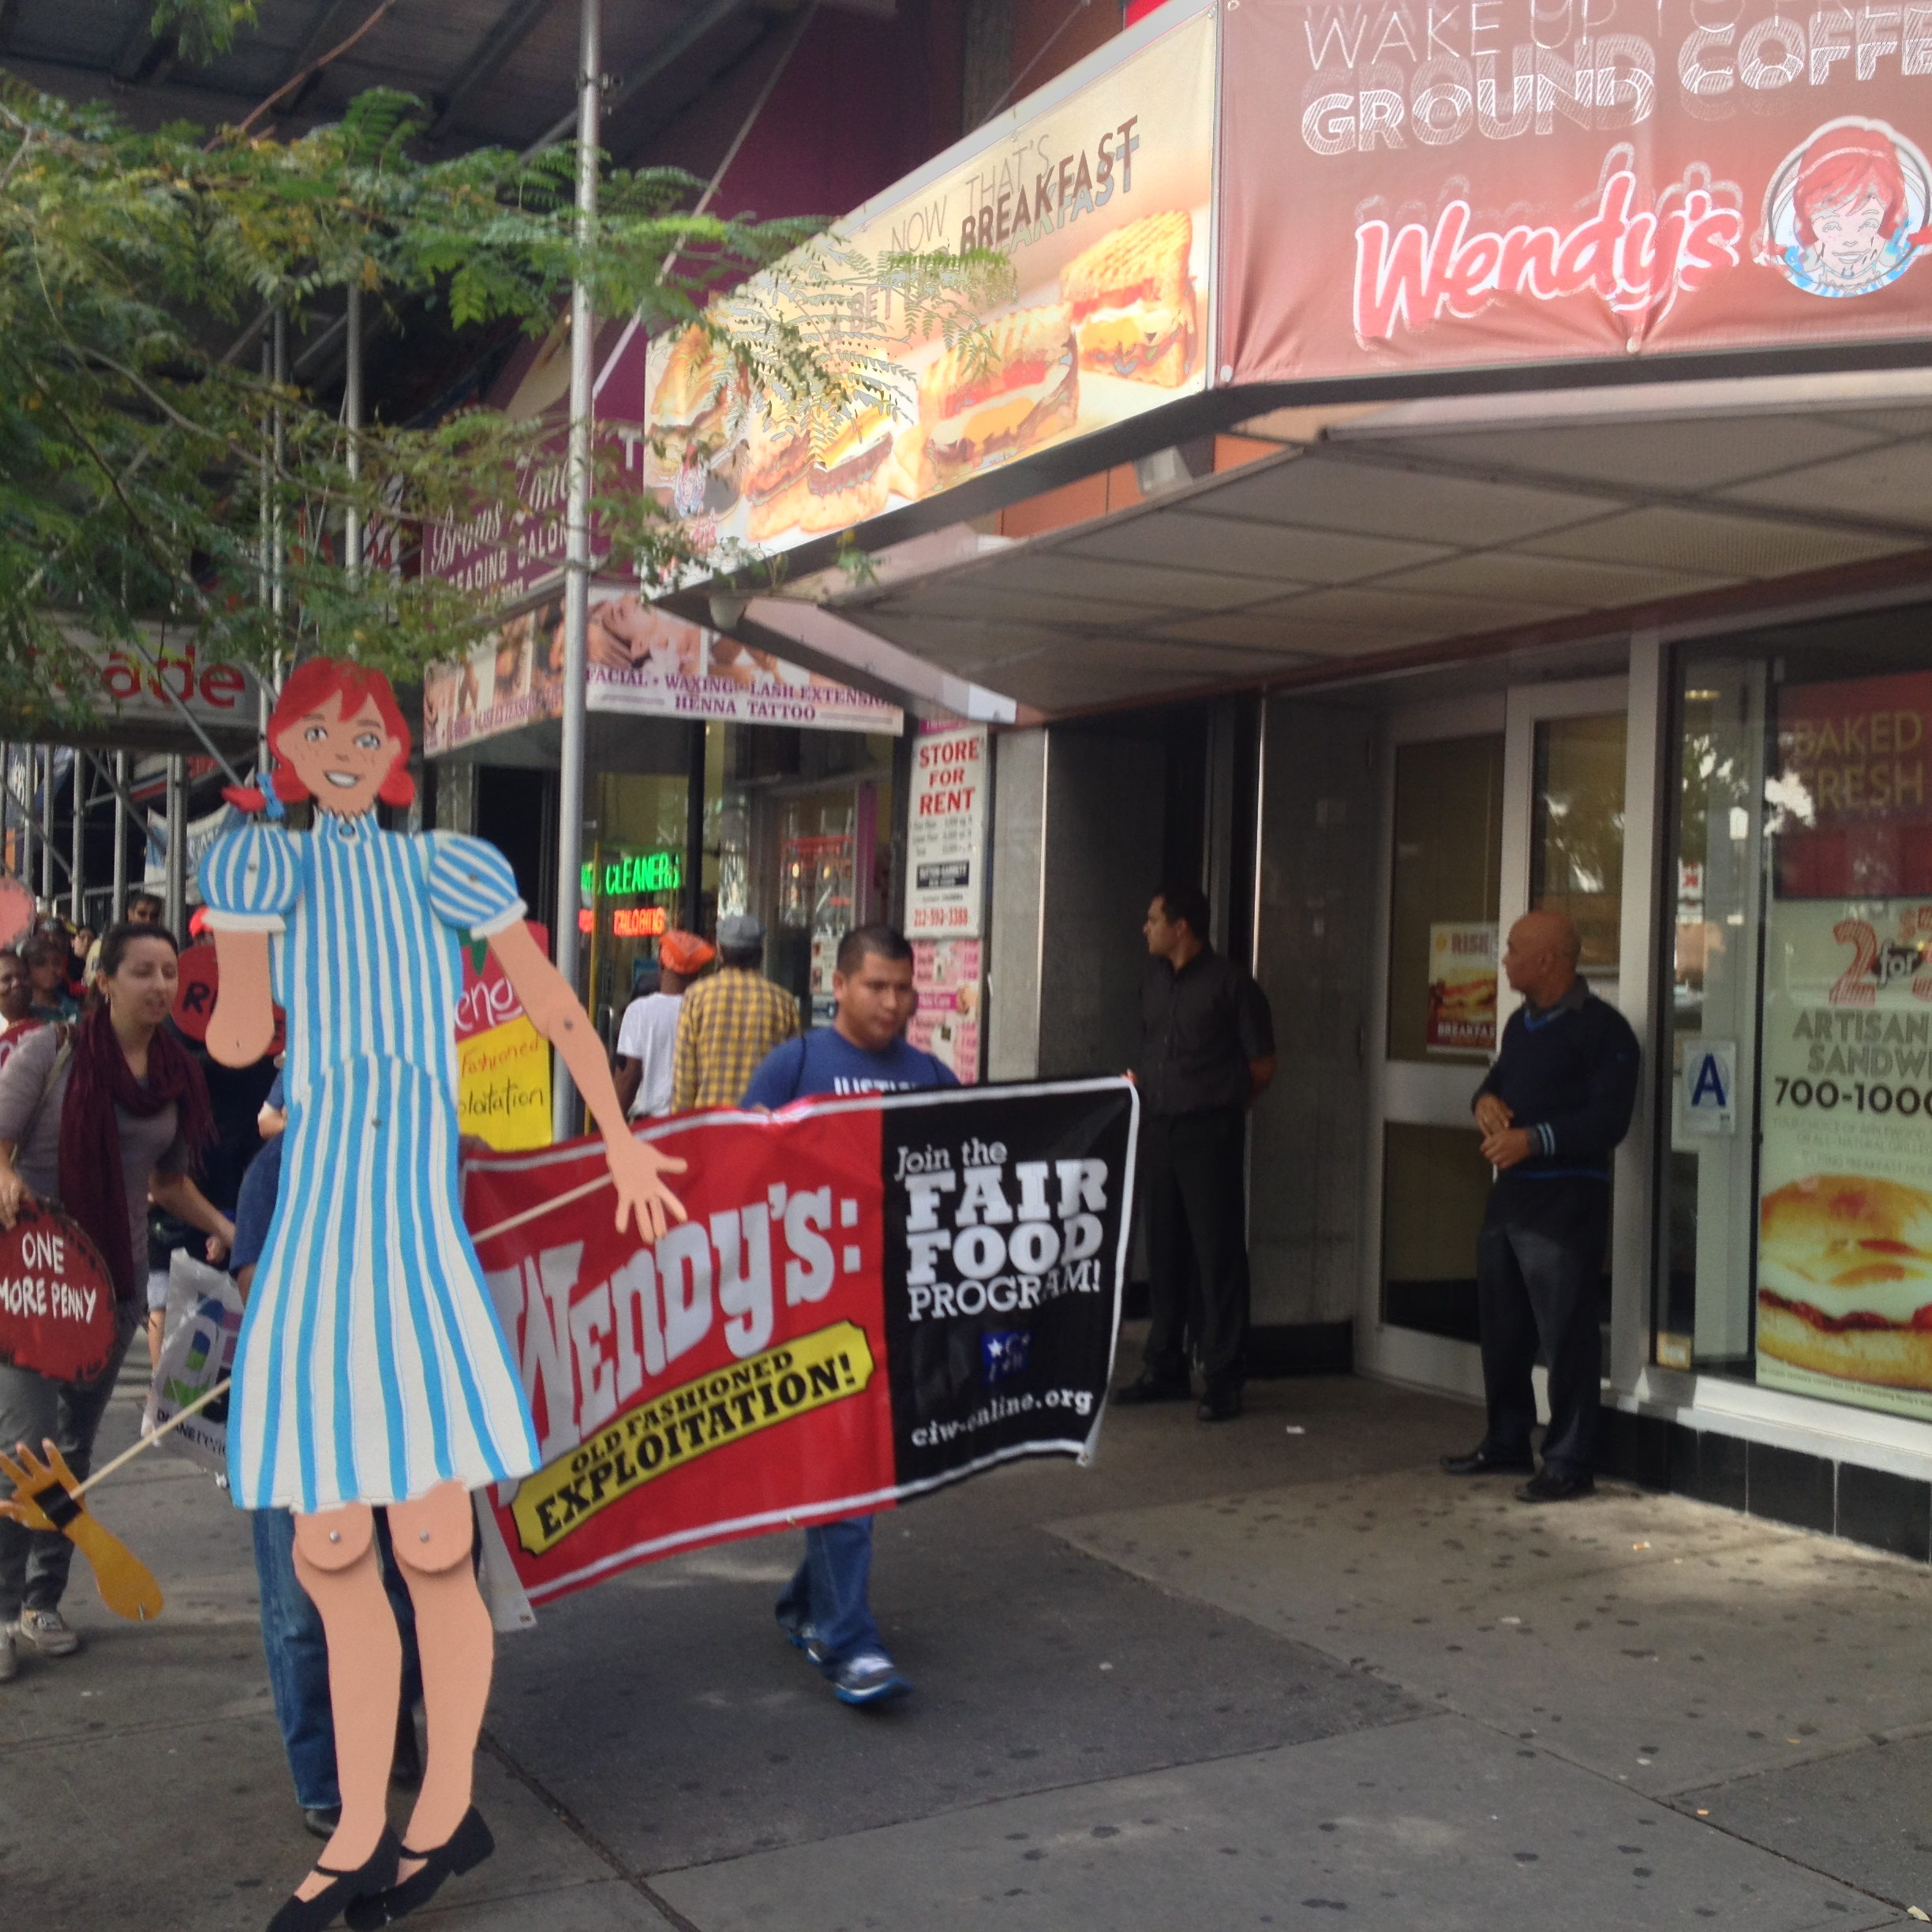 Representatives of Wendy's International stand outside of a Wendy's  restaurant on East 14th Street in Manhattan